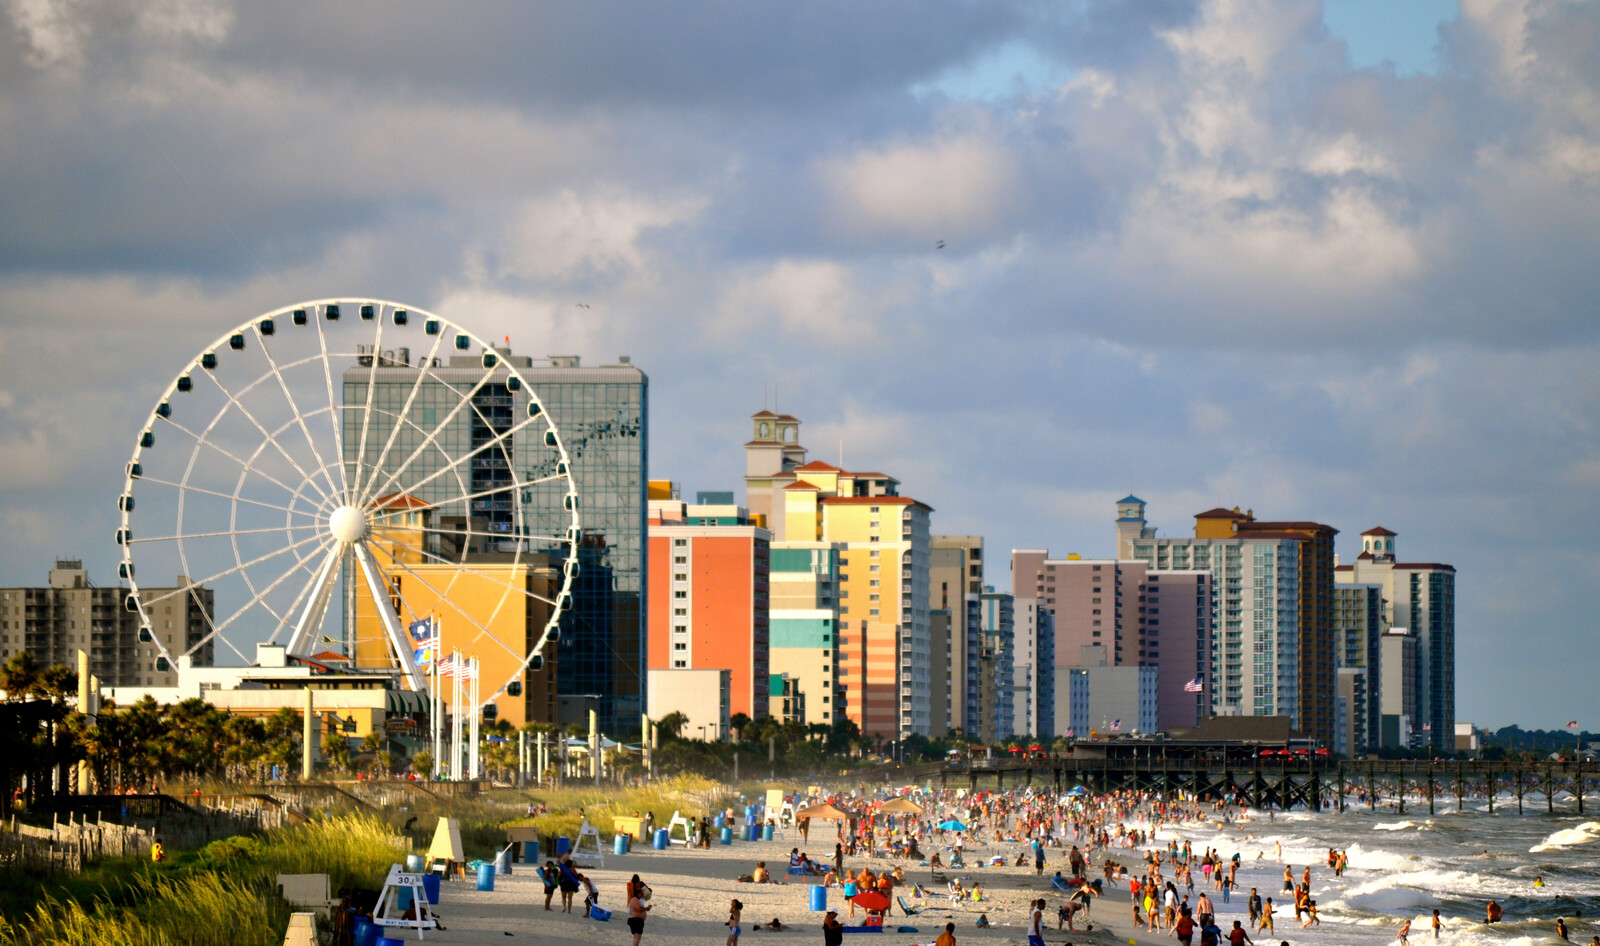 Myrtle beach coastline with skyline and Ferris wheel in the background.  And lots of people dotting the sandy beach